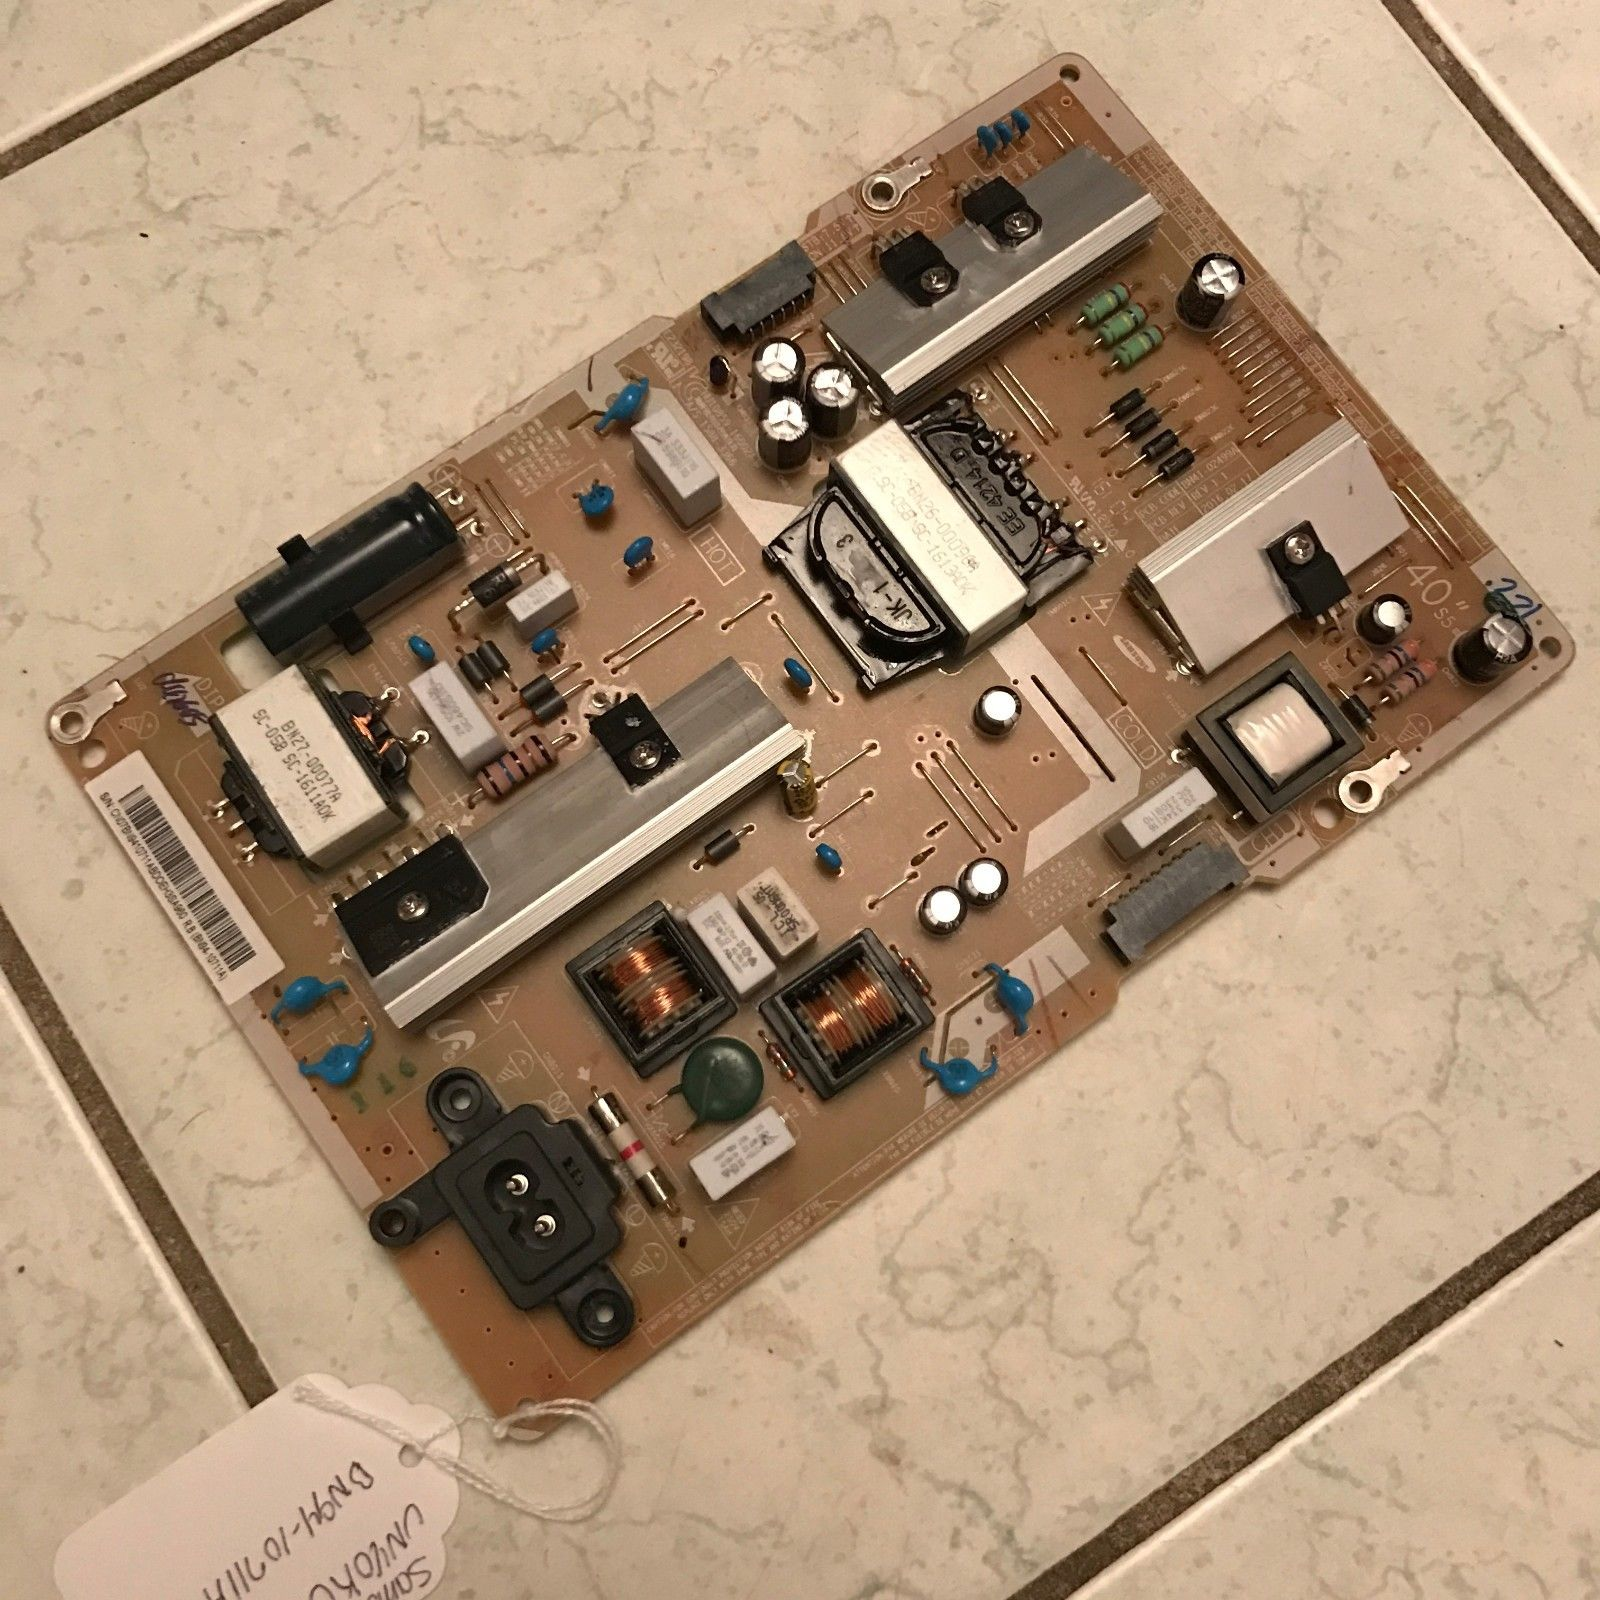 SAMSUNG BN94-10711A POWER SUPPLY BOARD FOR UN40KU6300 AND OTHER